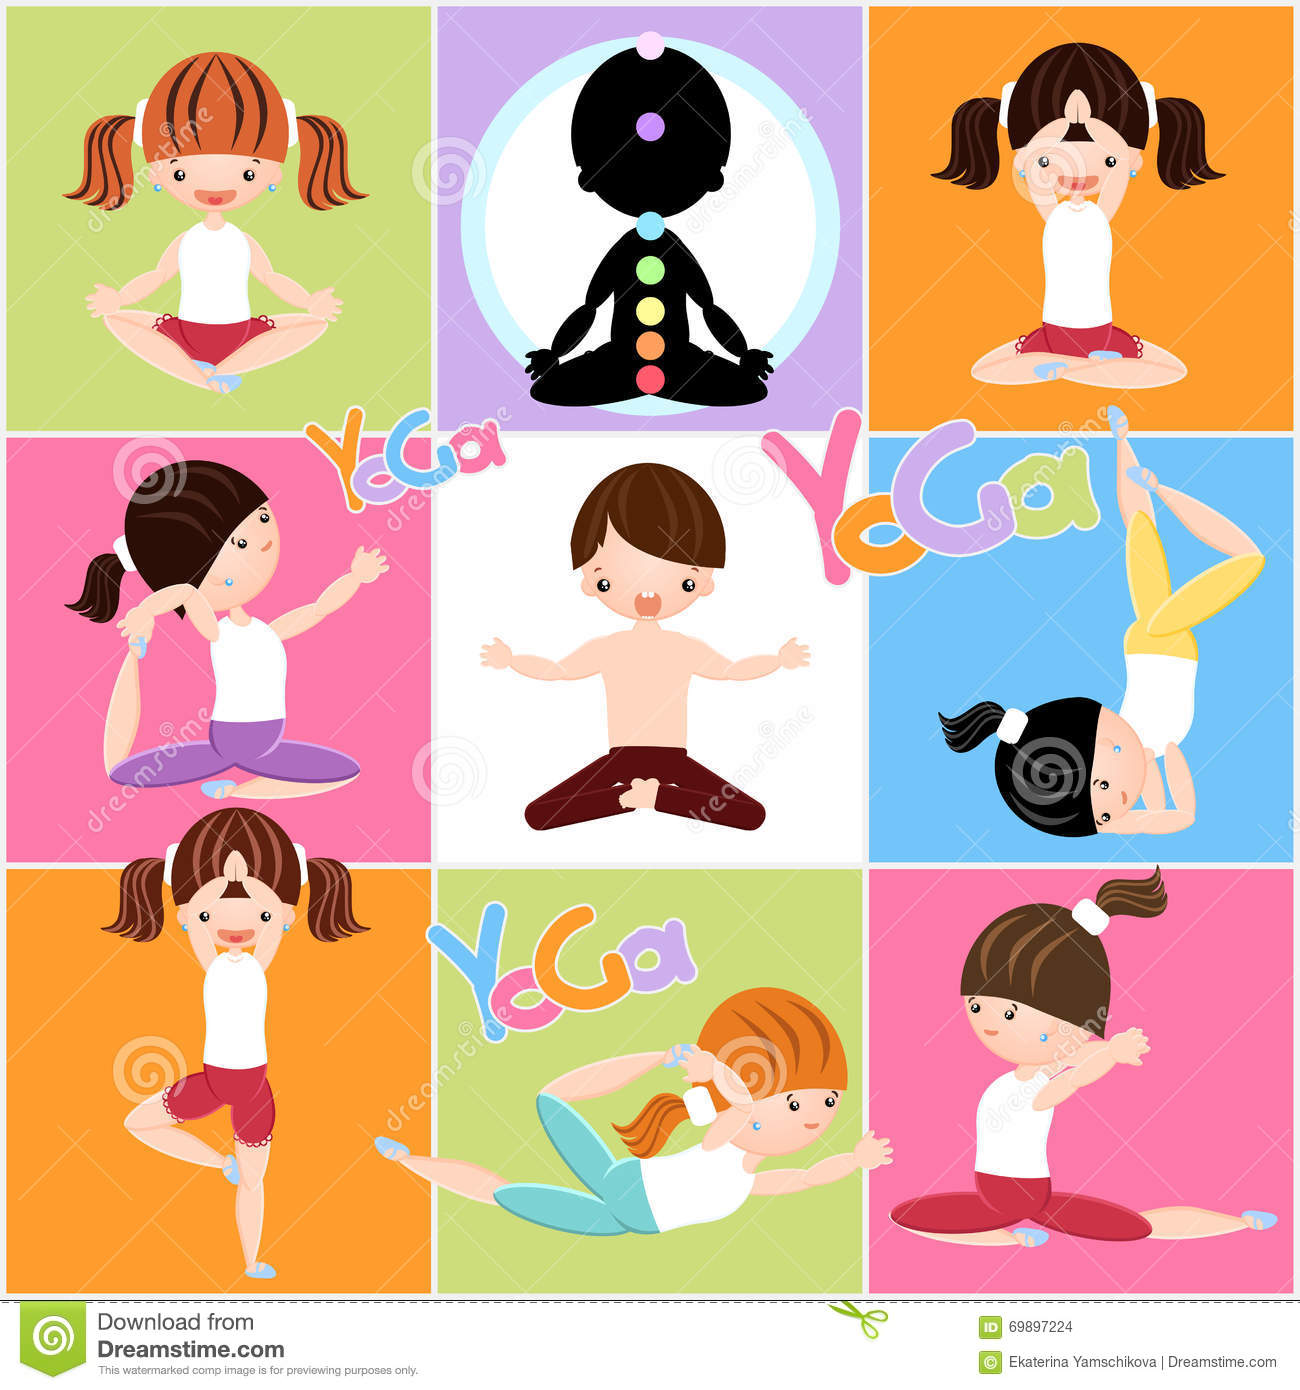 Clipart yoga stock vector. Illustration of logo, beautiful.